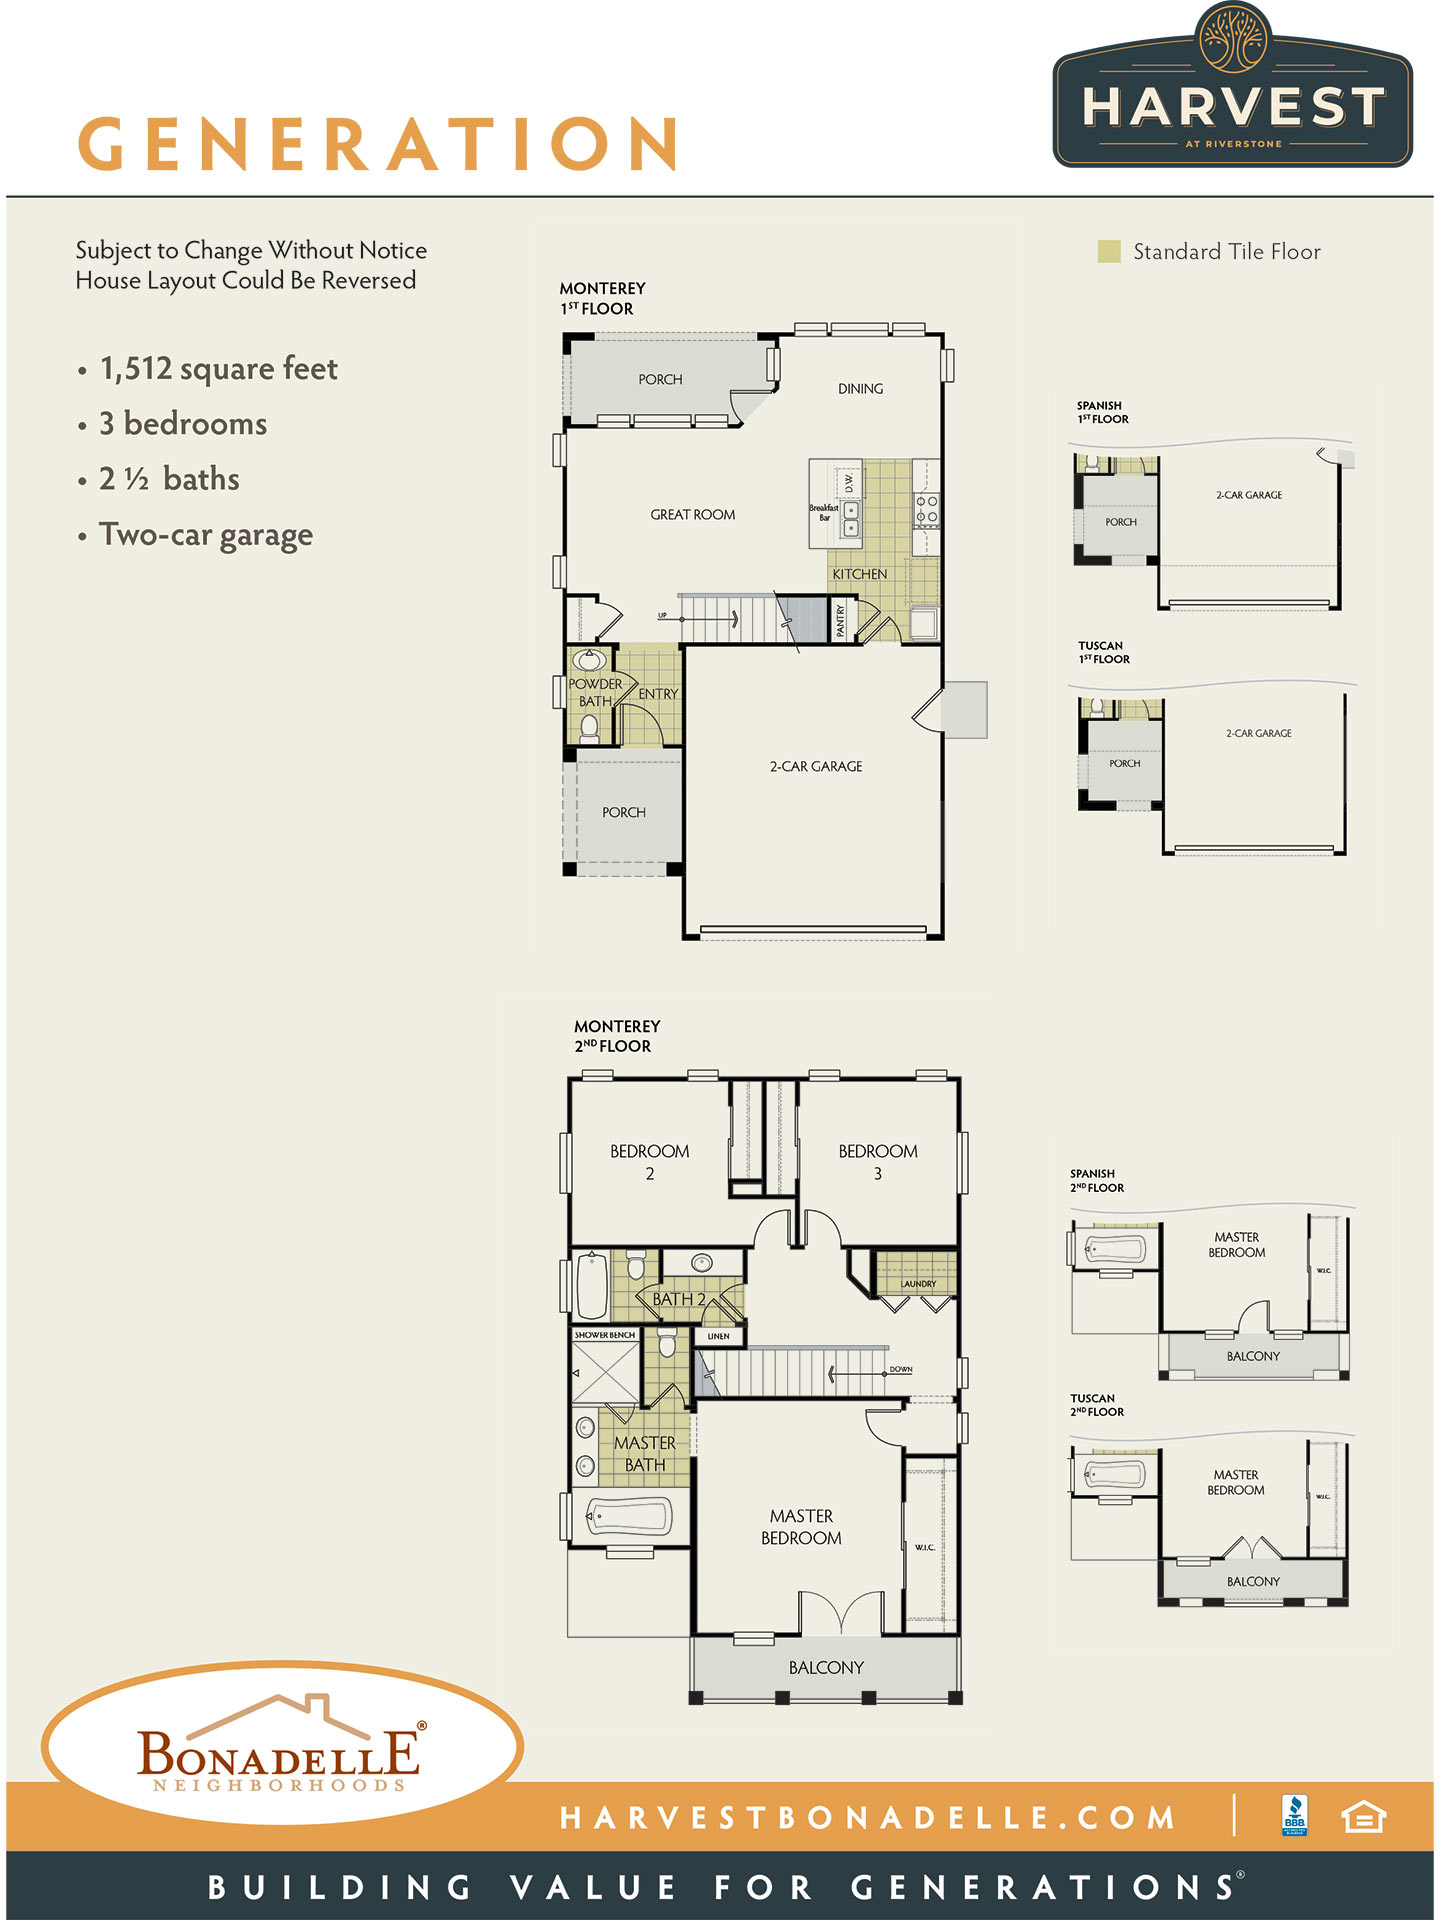 Harvest at Riverstone - Generation (Subject to Change Without Notice; House Layout Could Be Reversed) •1,512 square feet • 3 bedrooms • 2 1/2 baths • Two-car garage. Bonadelle Neighborhoods: Building Value for Generations